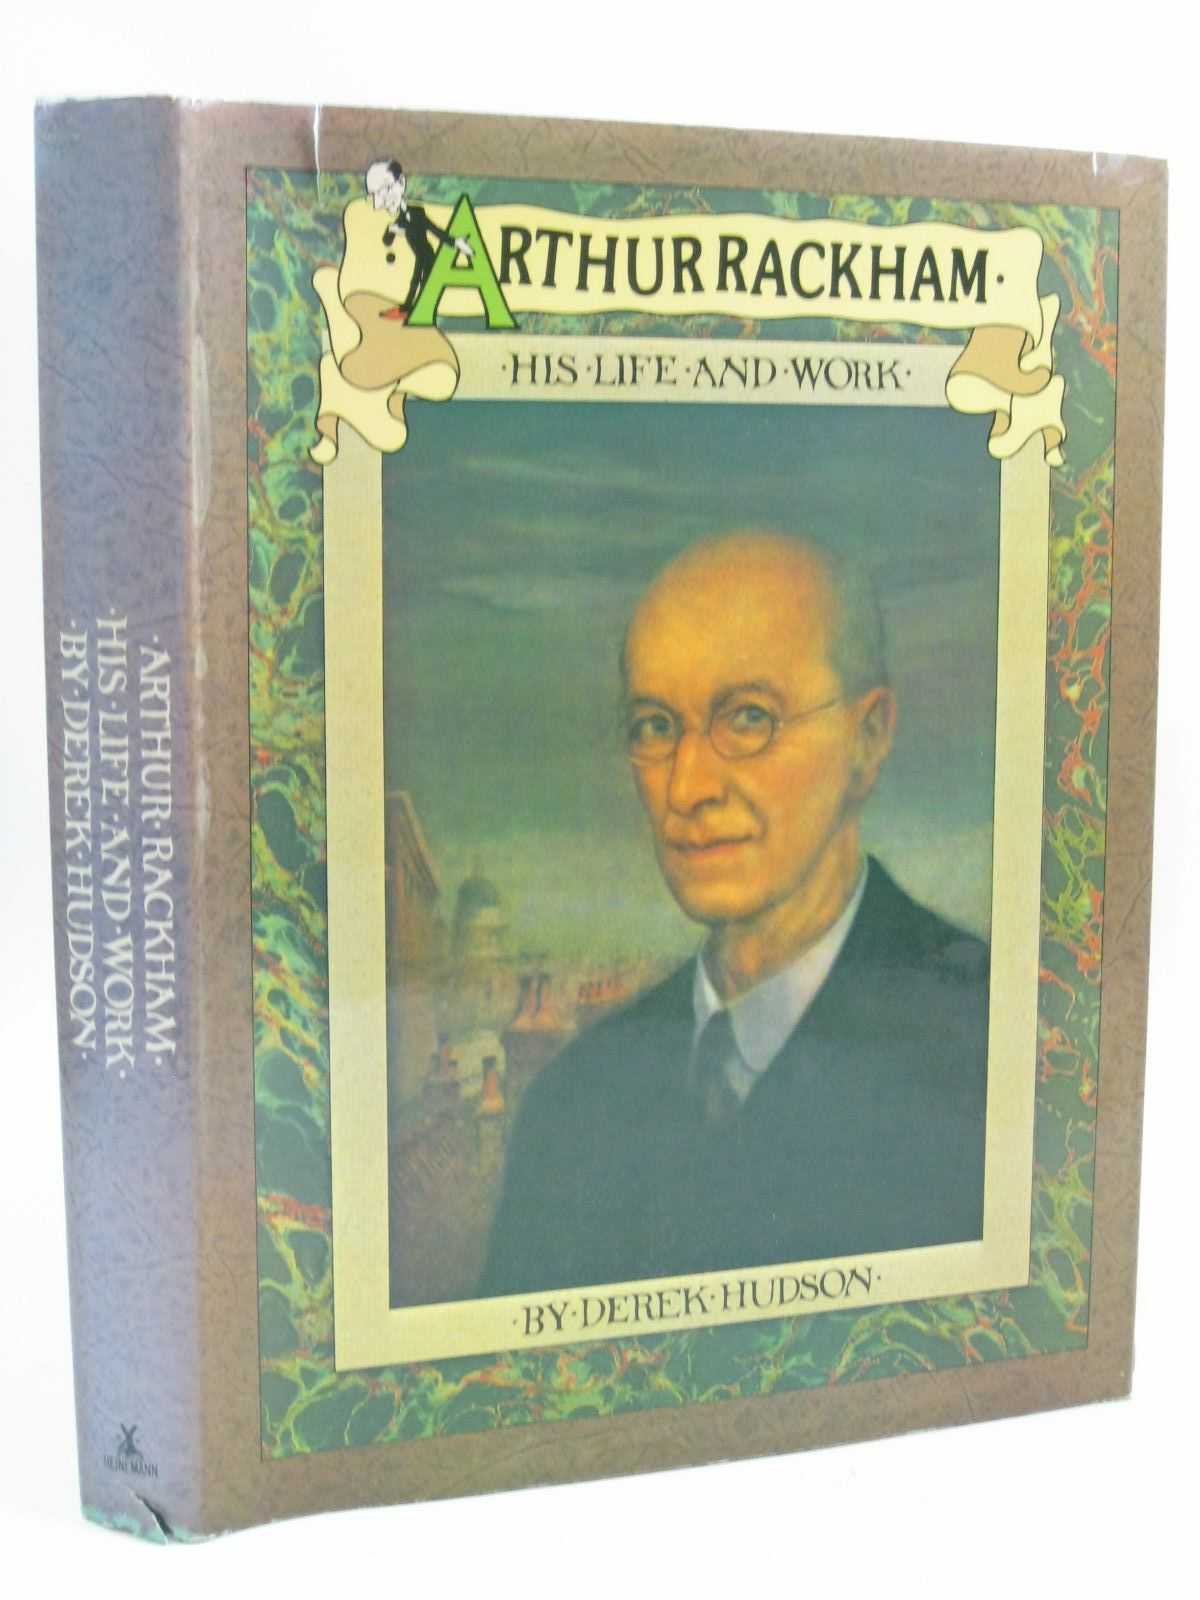 Photo of ARTHUR RACKHAM HIS LIFE AND WORK written by Hudson, Derek illustrated by Rackham, Arthur published by William Heinemann Ltd. (STOCK CODE: 1314867)  for sale by Stella & Rose's Books